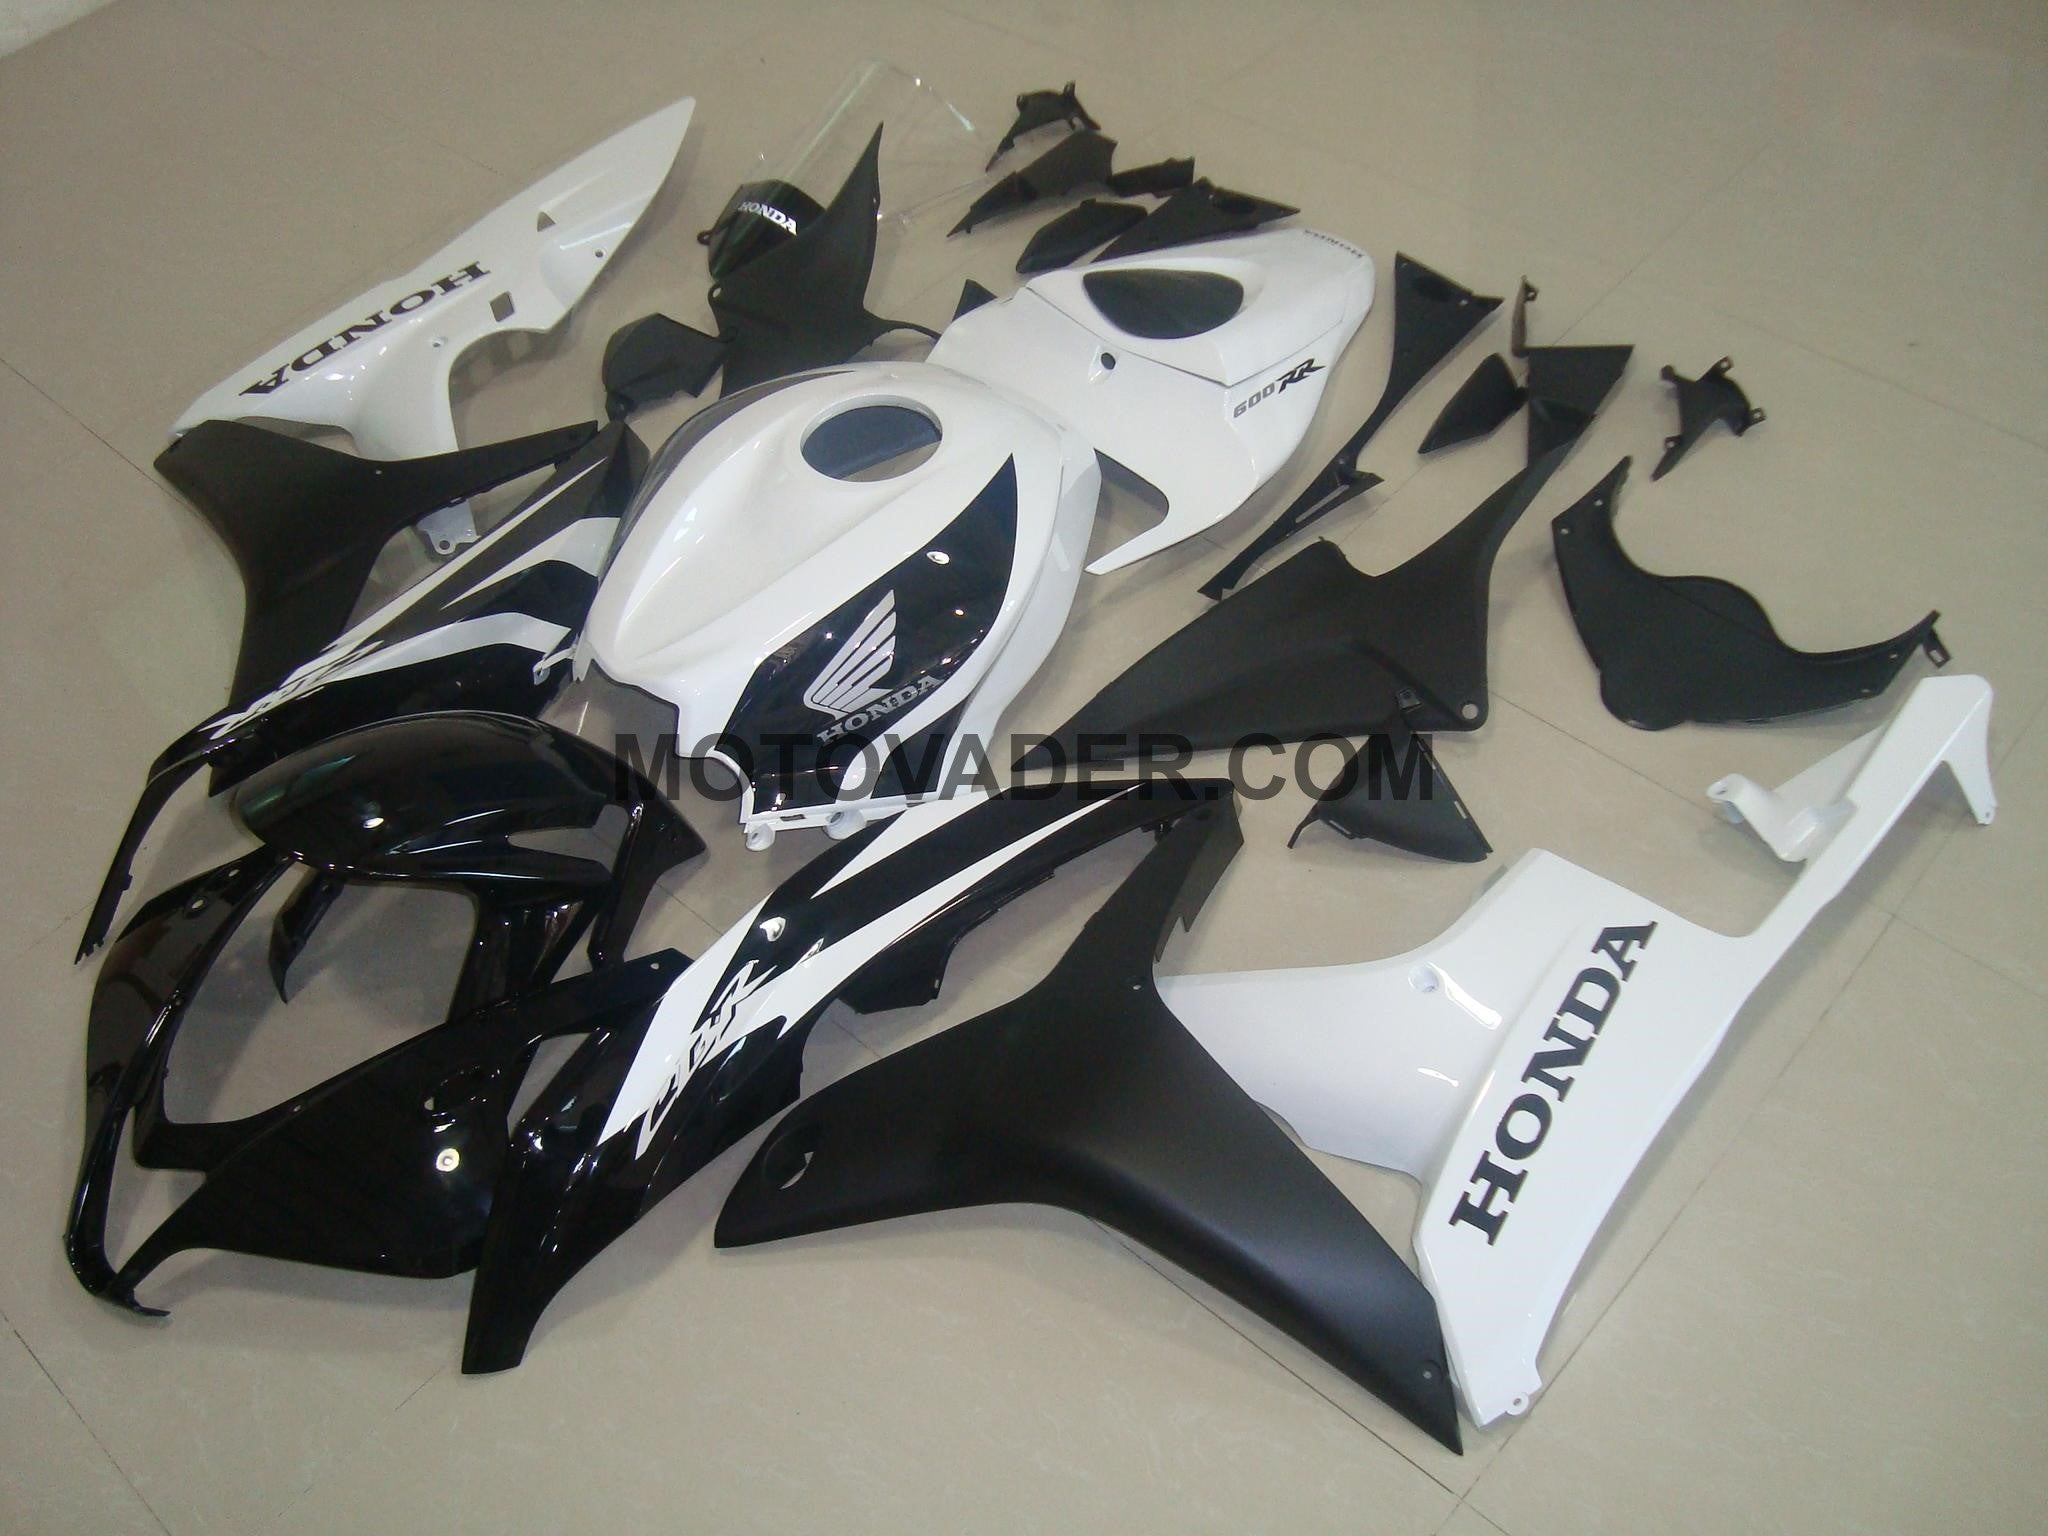 Honda CBR 600RR 2007-2008 Matt Black & White Fairing